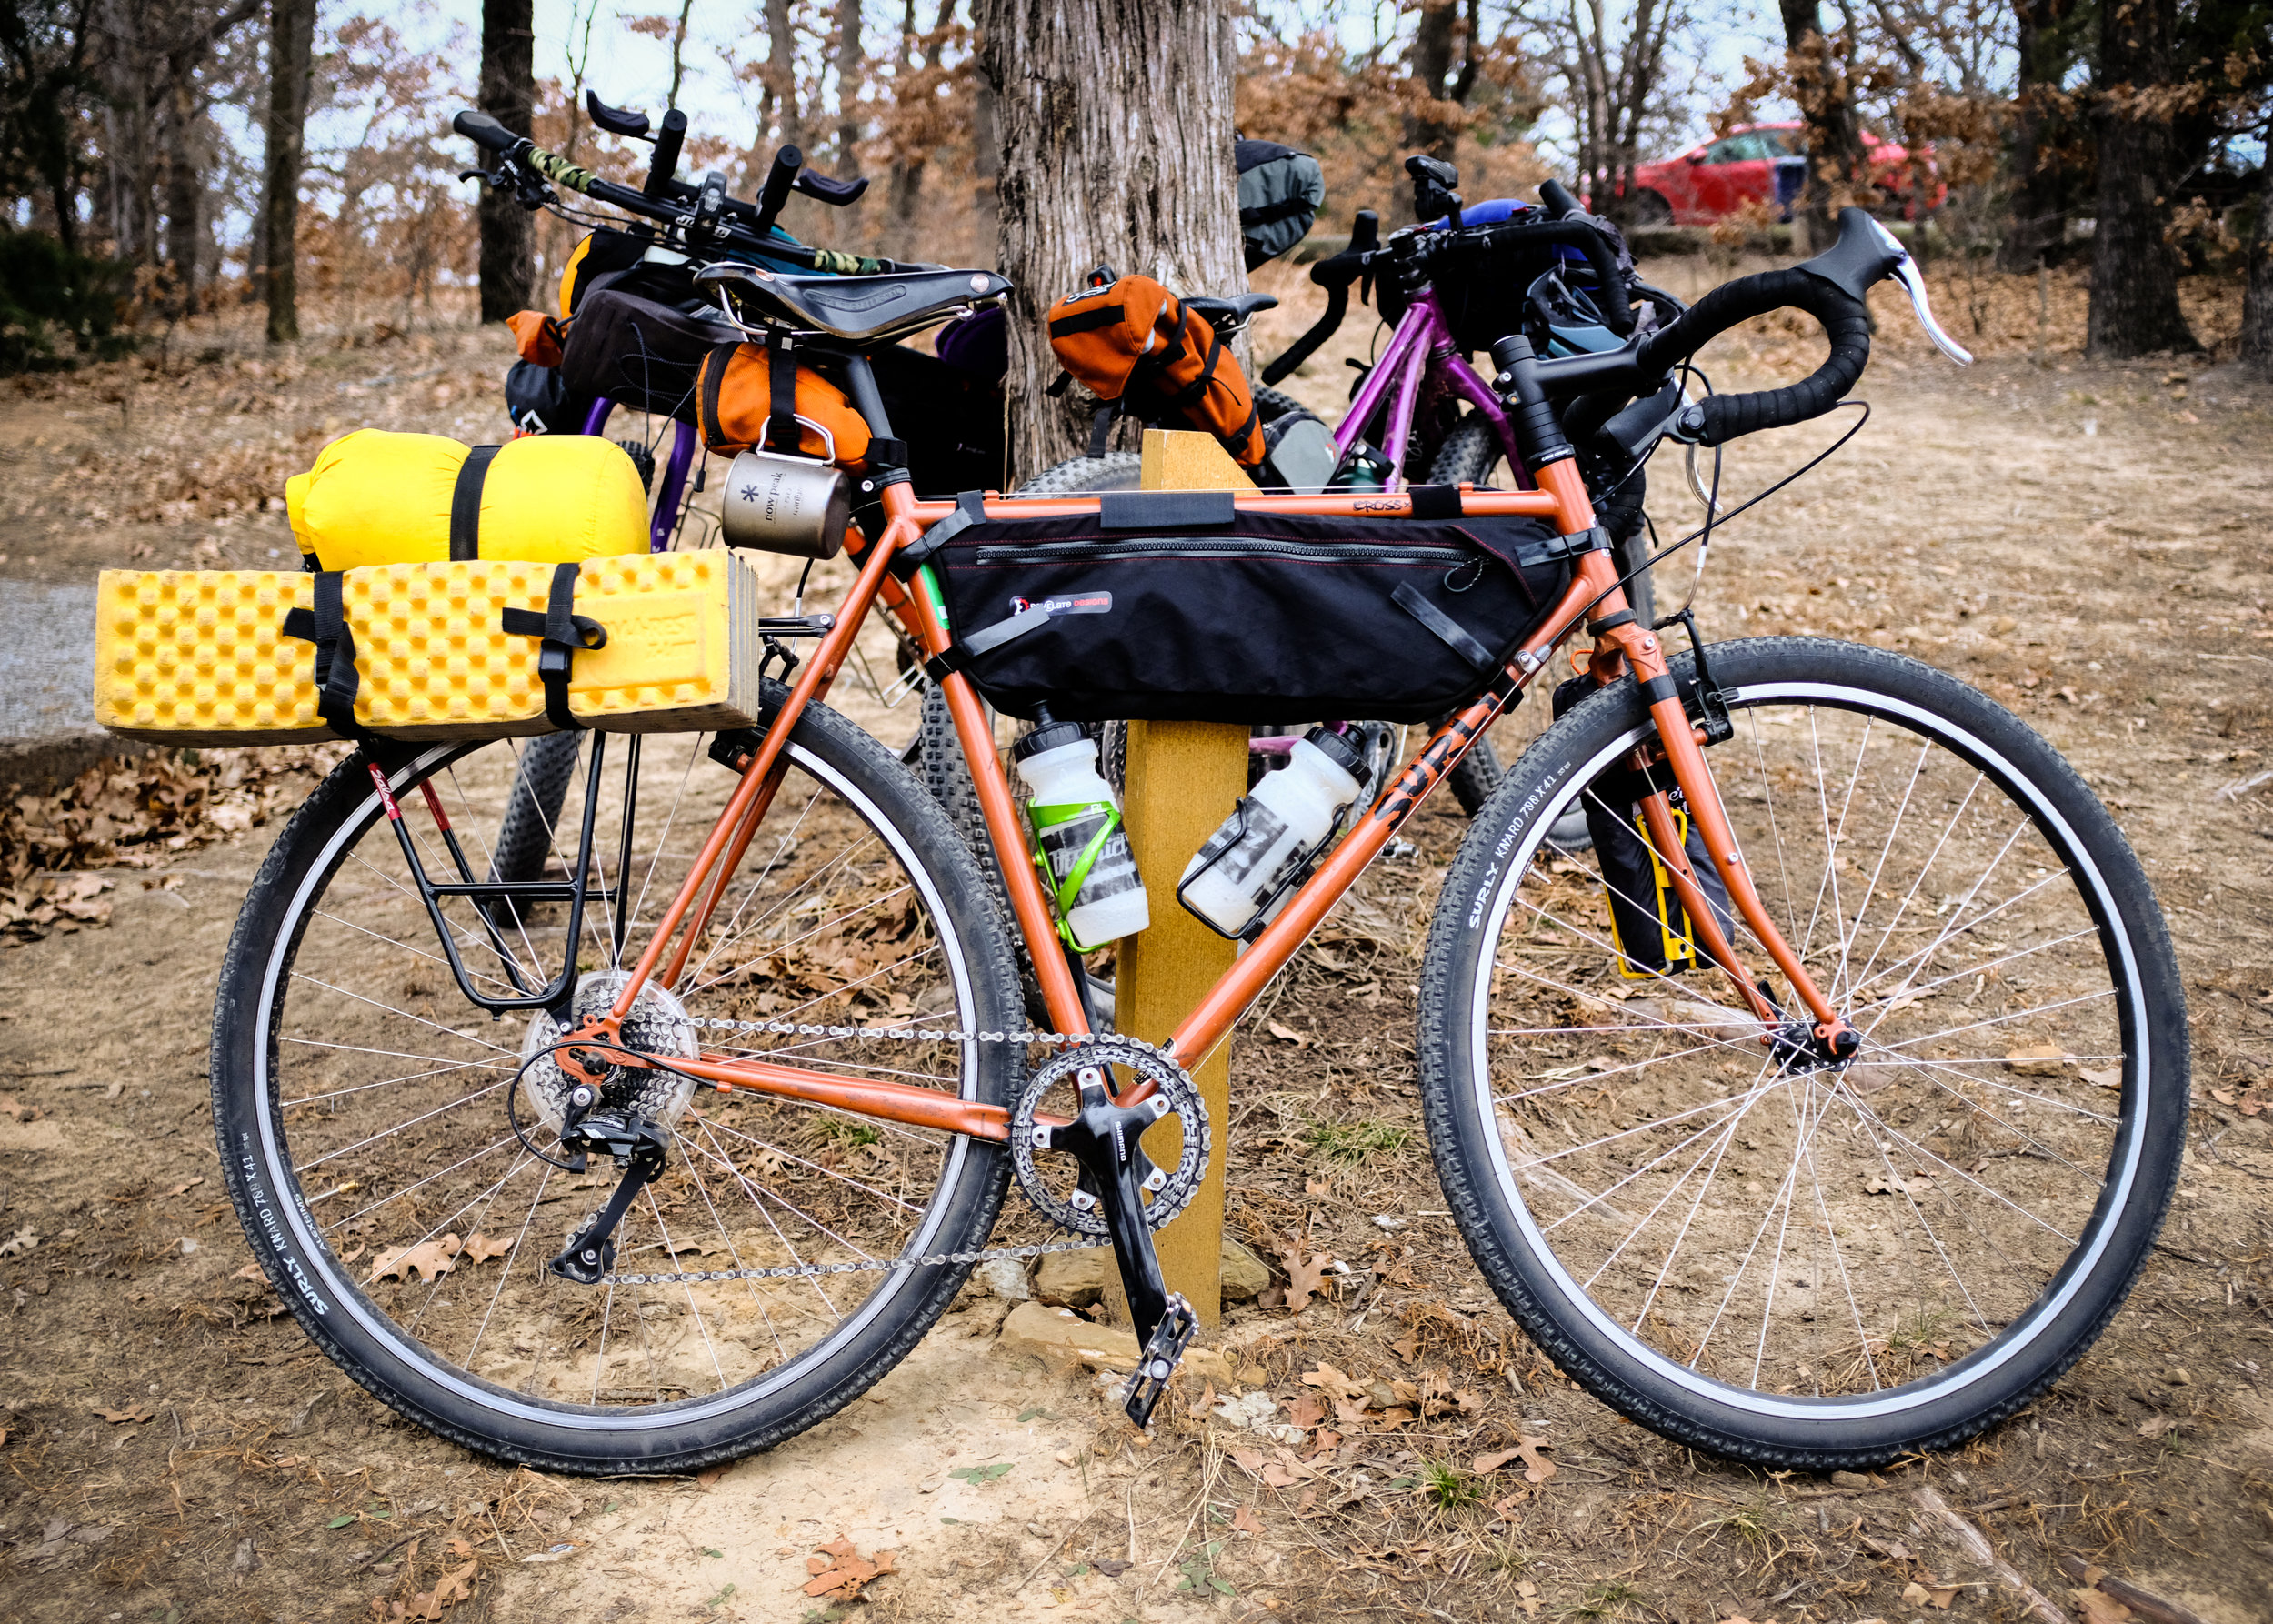 JT Gragg's Surly Cross-Check Bivouac Machine